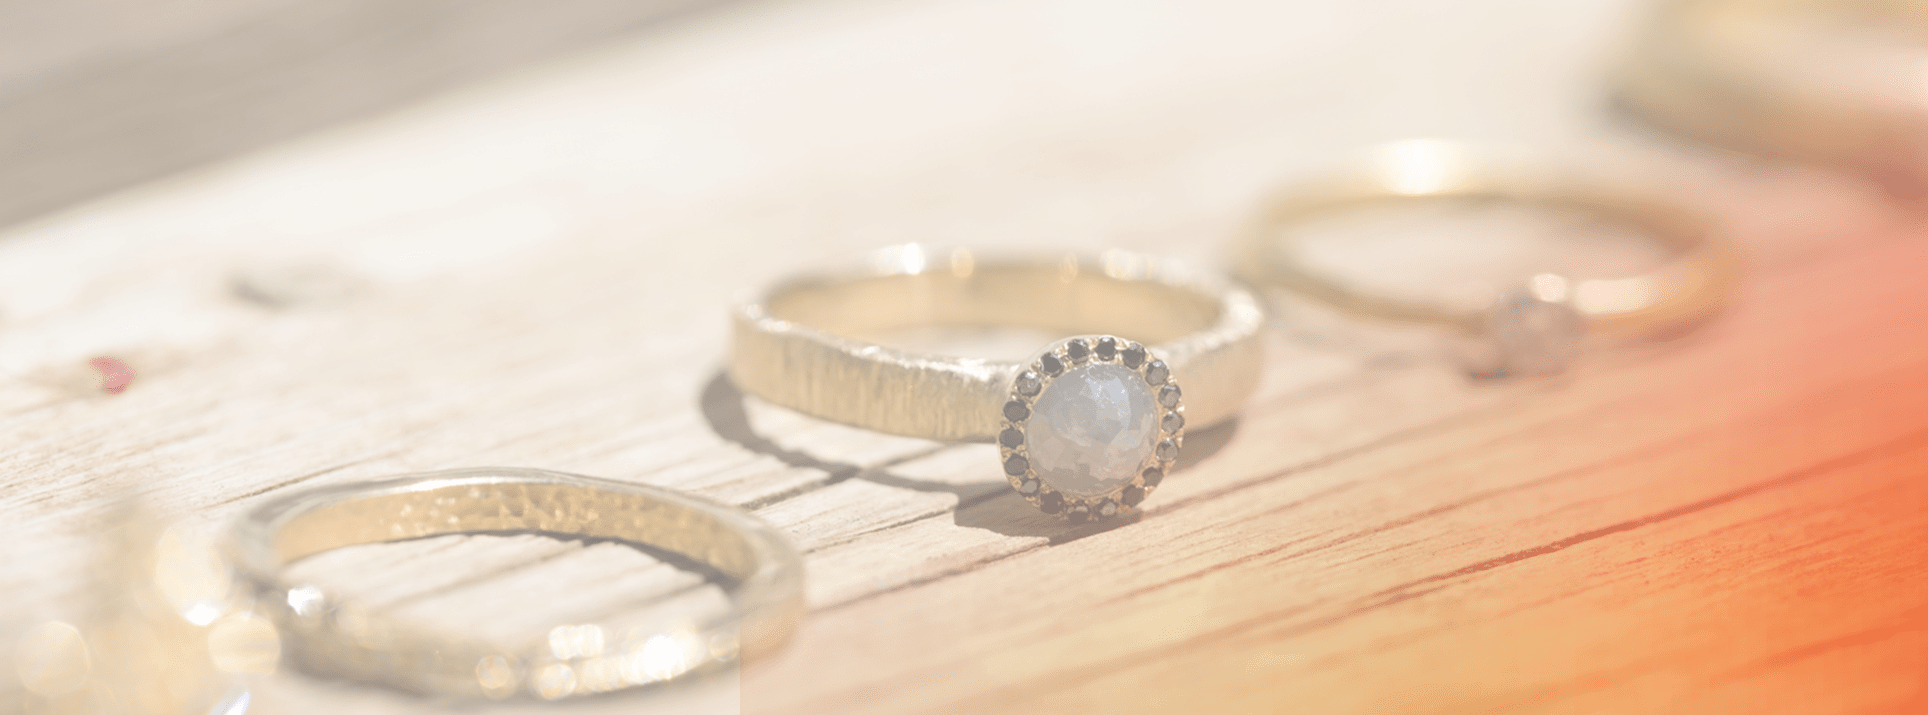 collections background